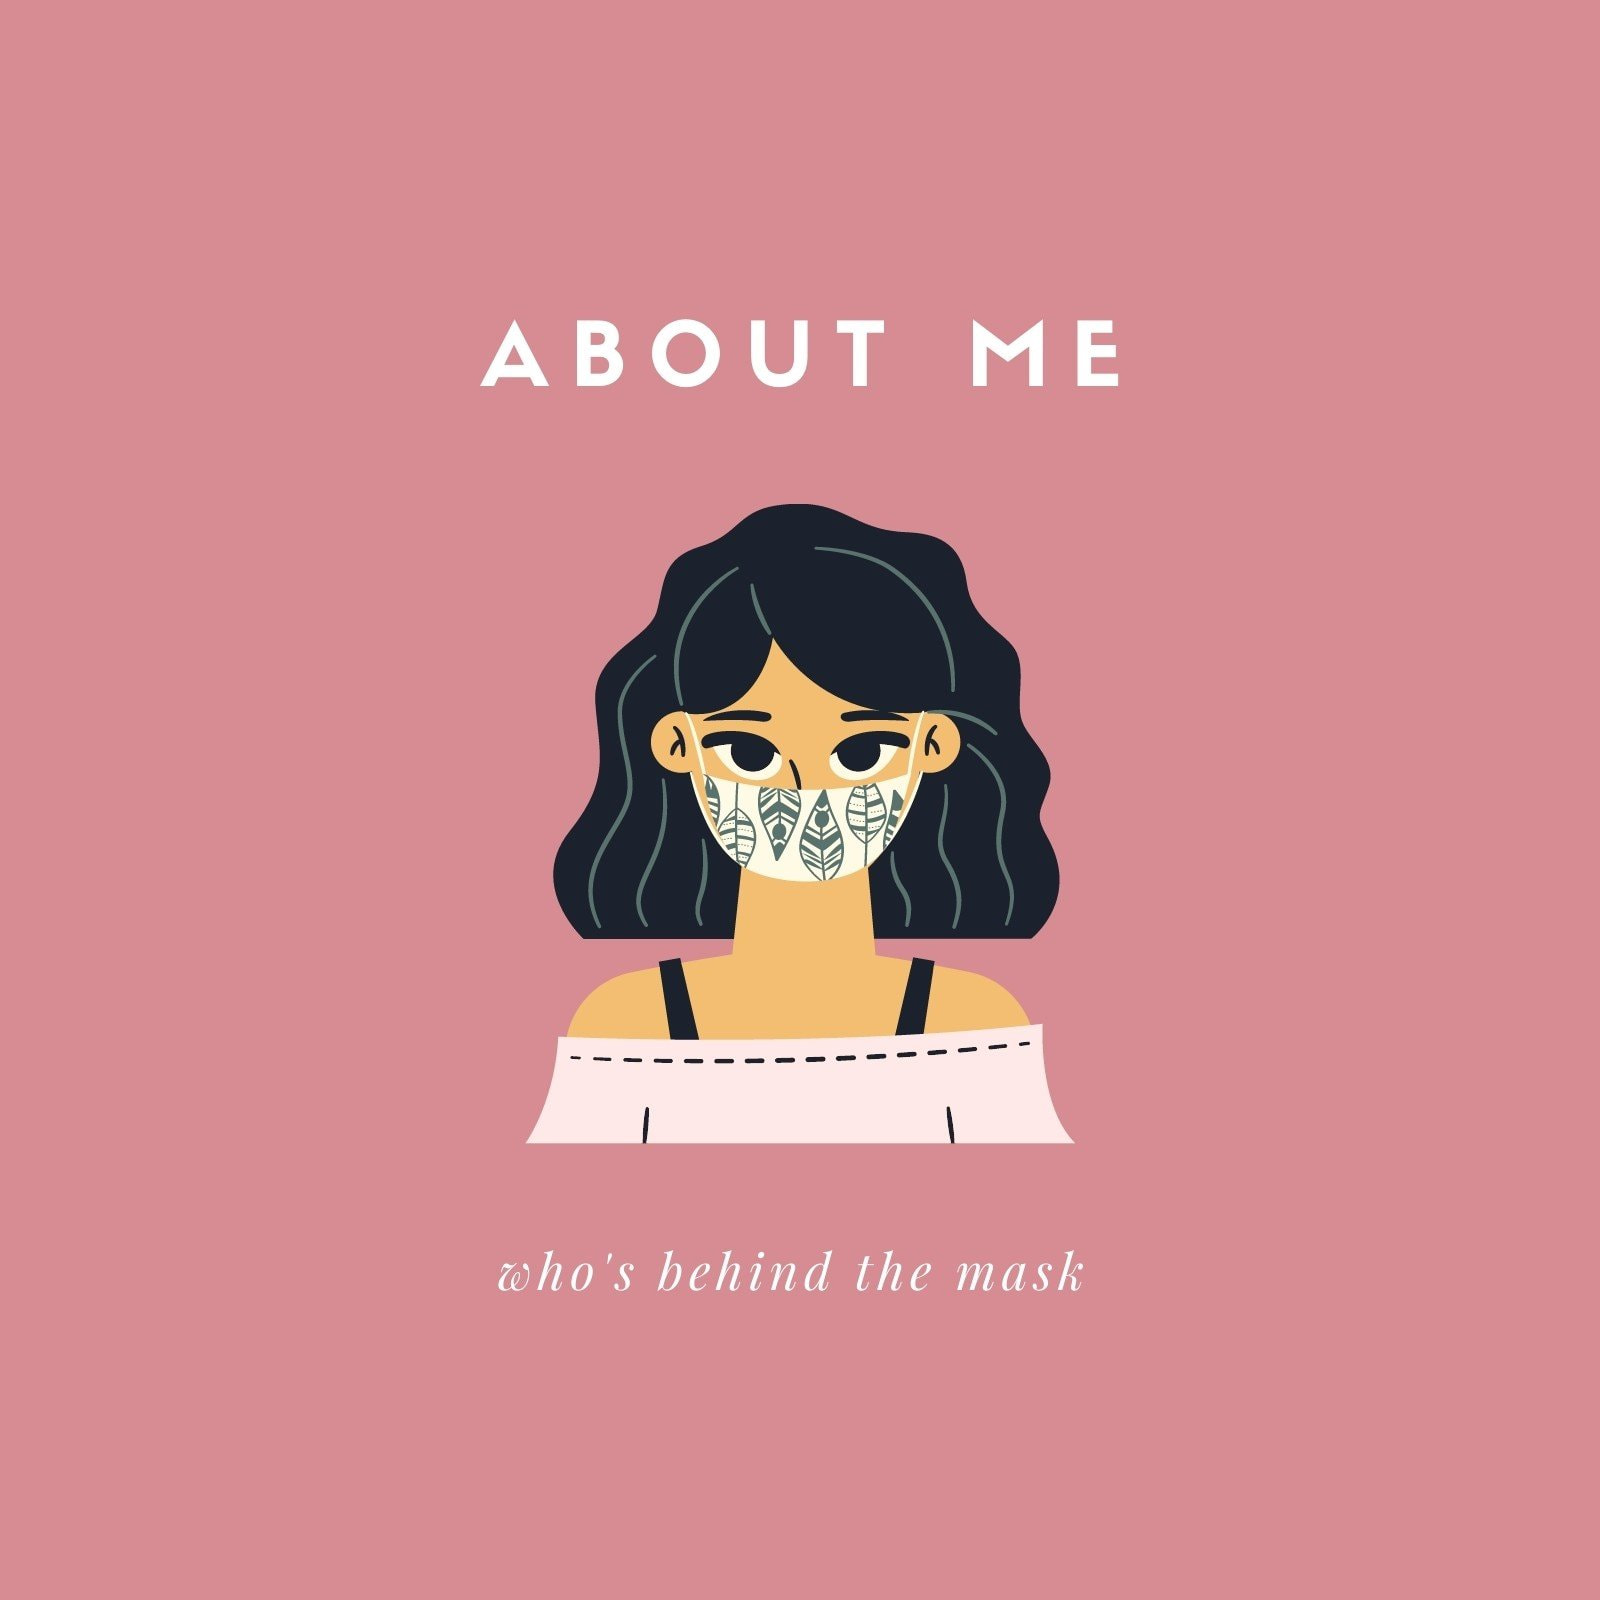 About Me Illustrated Avatar with Mask Social Media Post